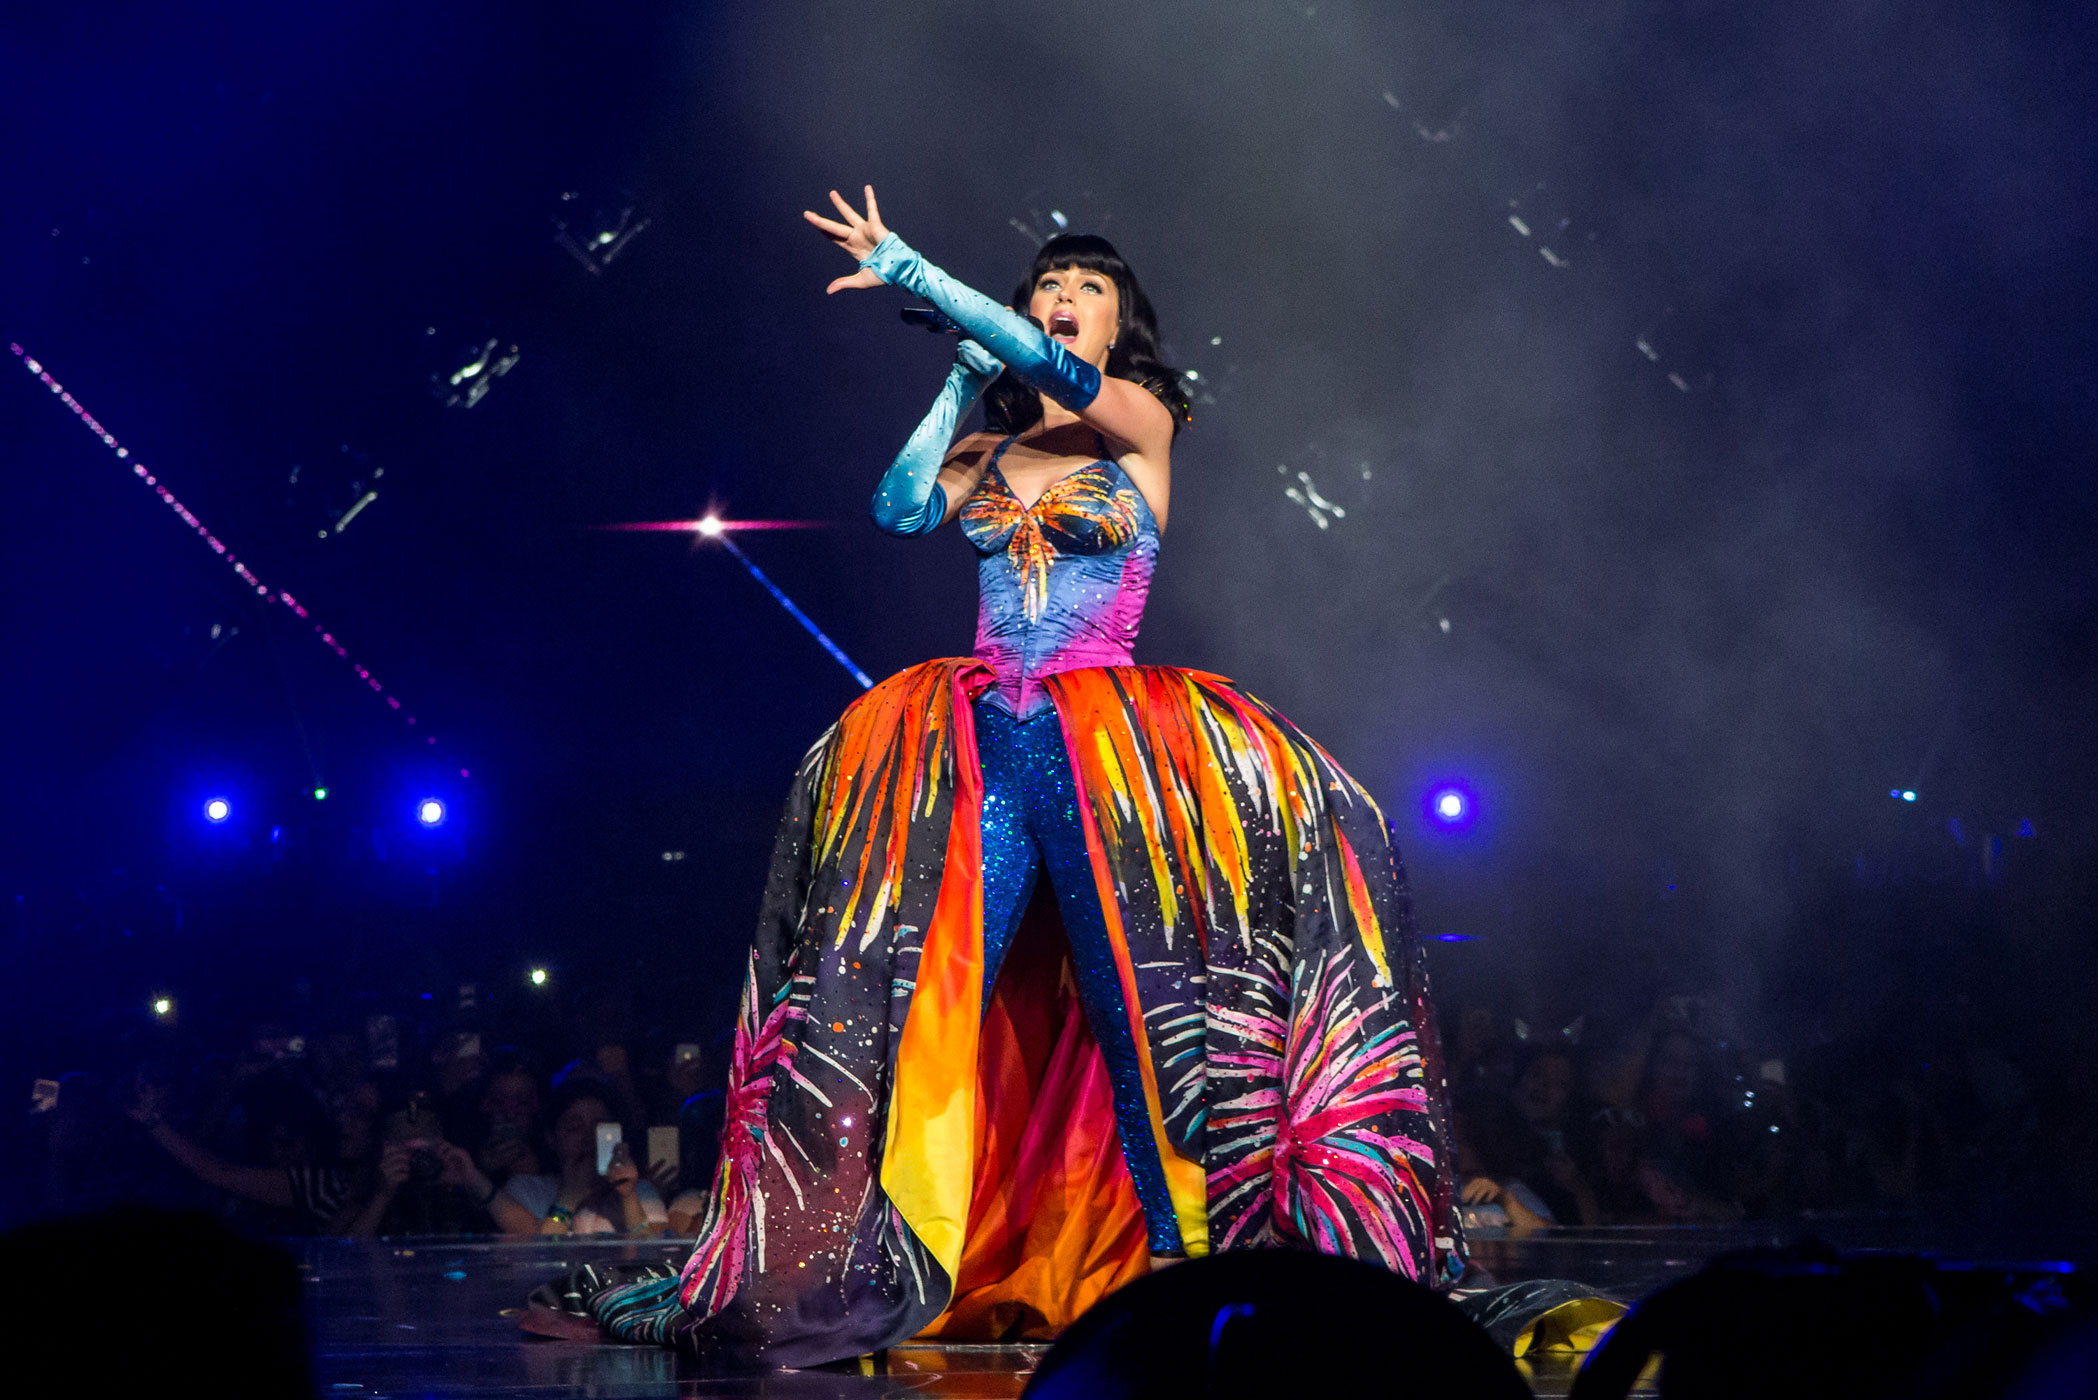 Perry shows an impressive array of colors during the Prismatic tour at Staples Center on Saturday, September 20, 2014 in Los Angeles, Calif.